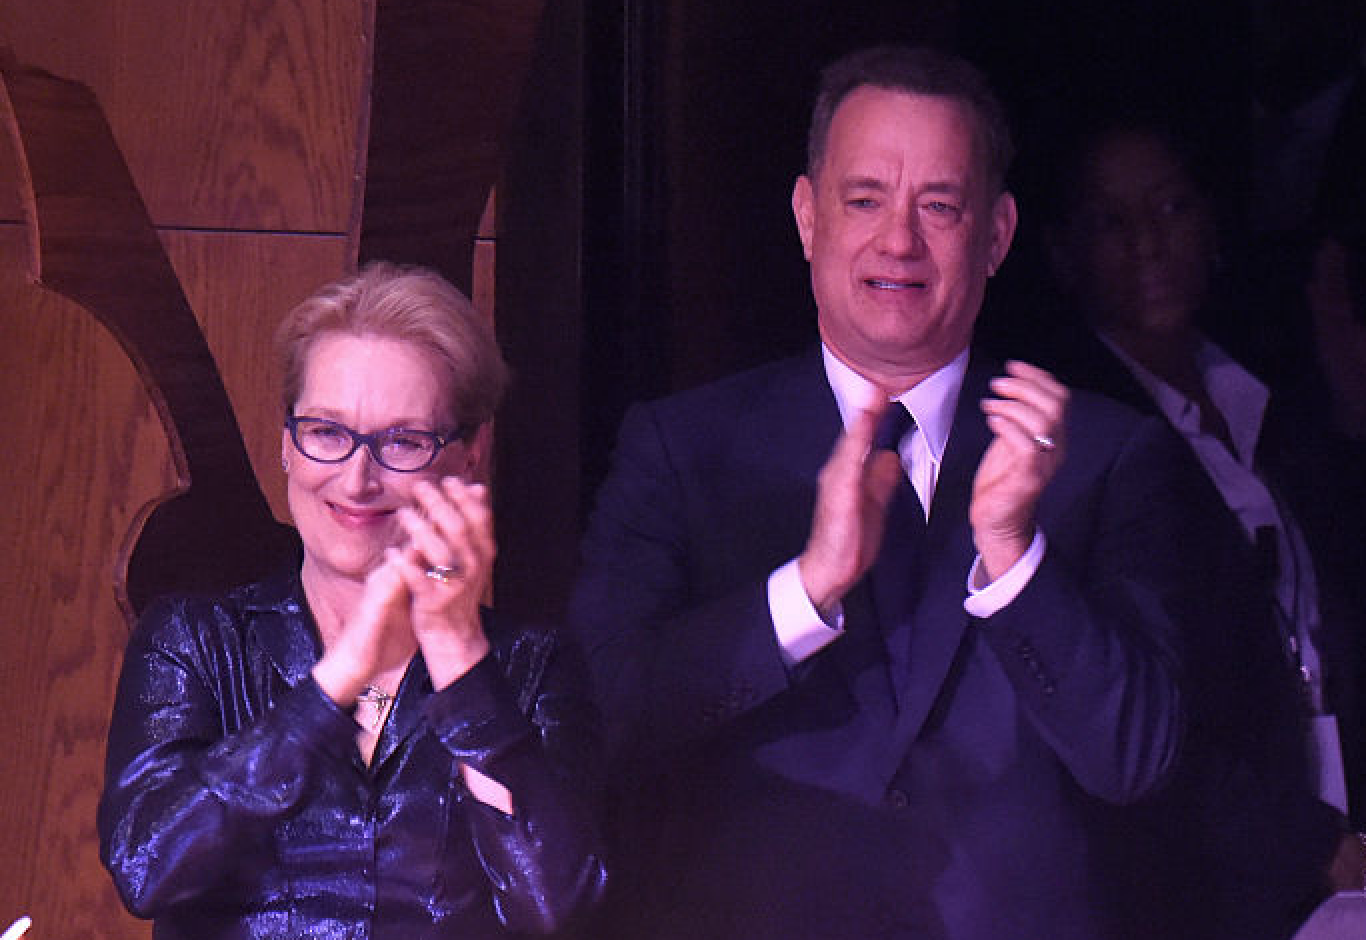 Meryl Streep and Tom Hanks will costar in a political drama with Steven Spielberg directing, and just give it all the Oscars already